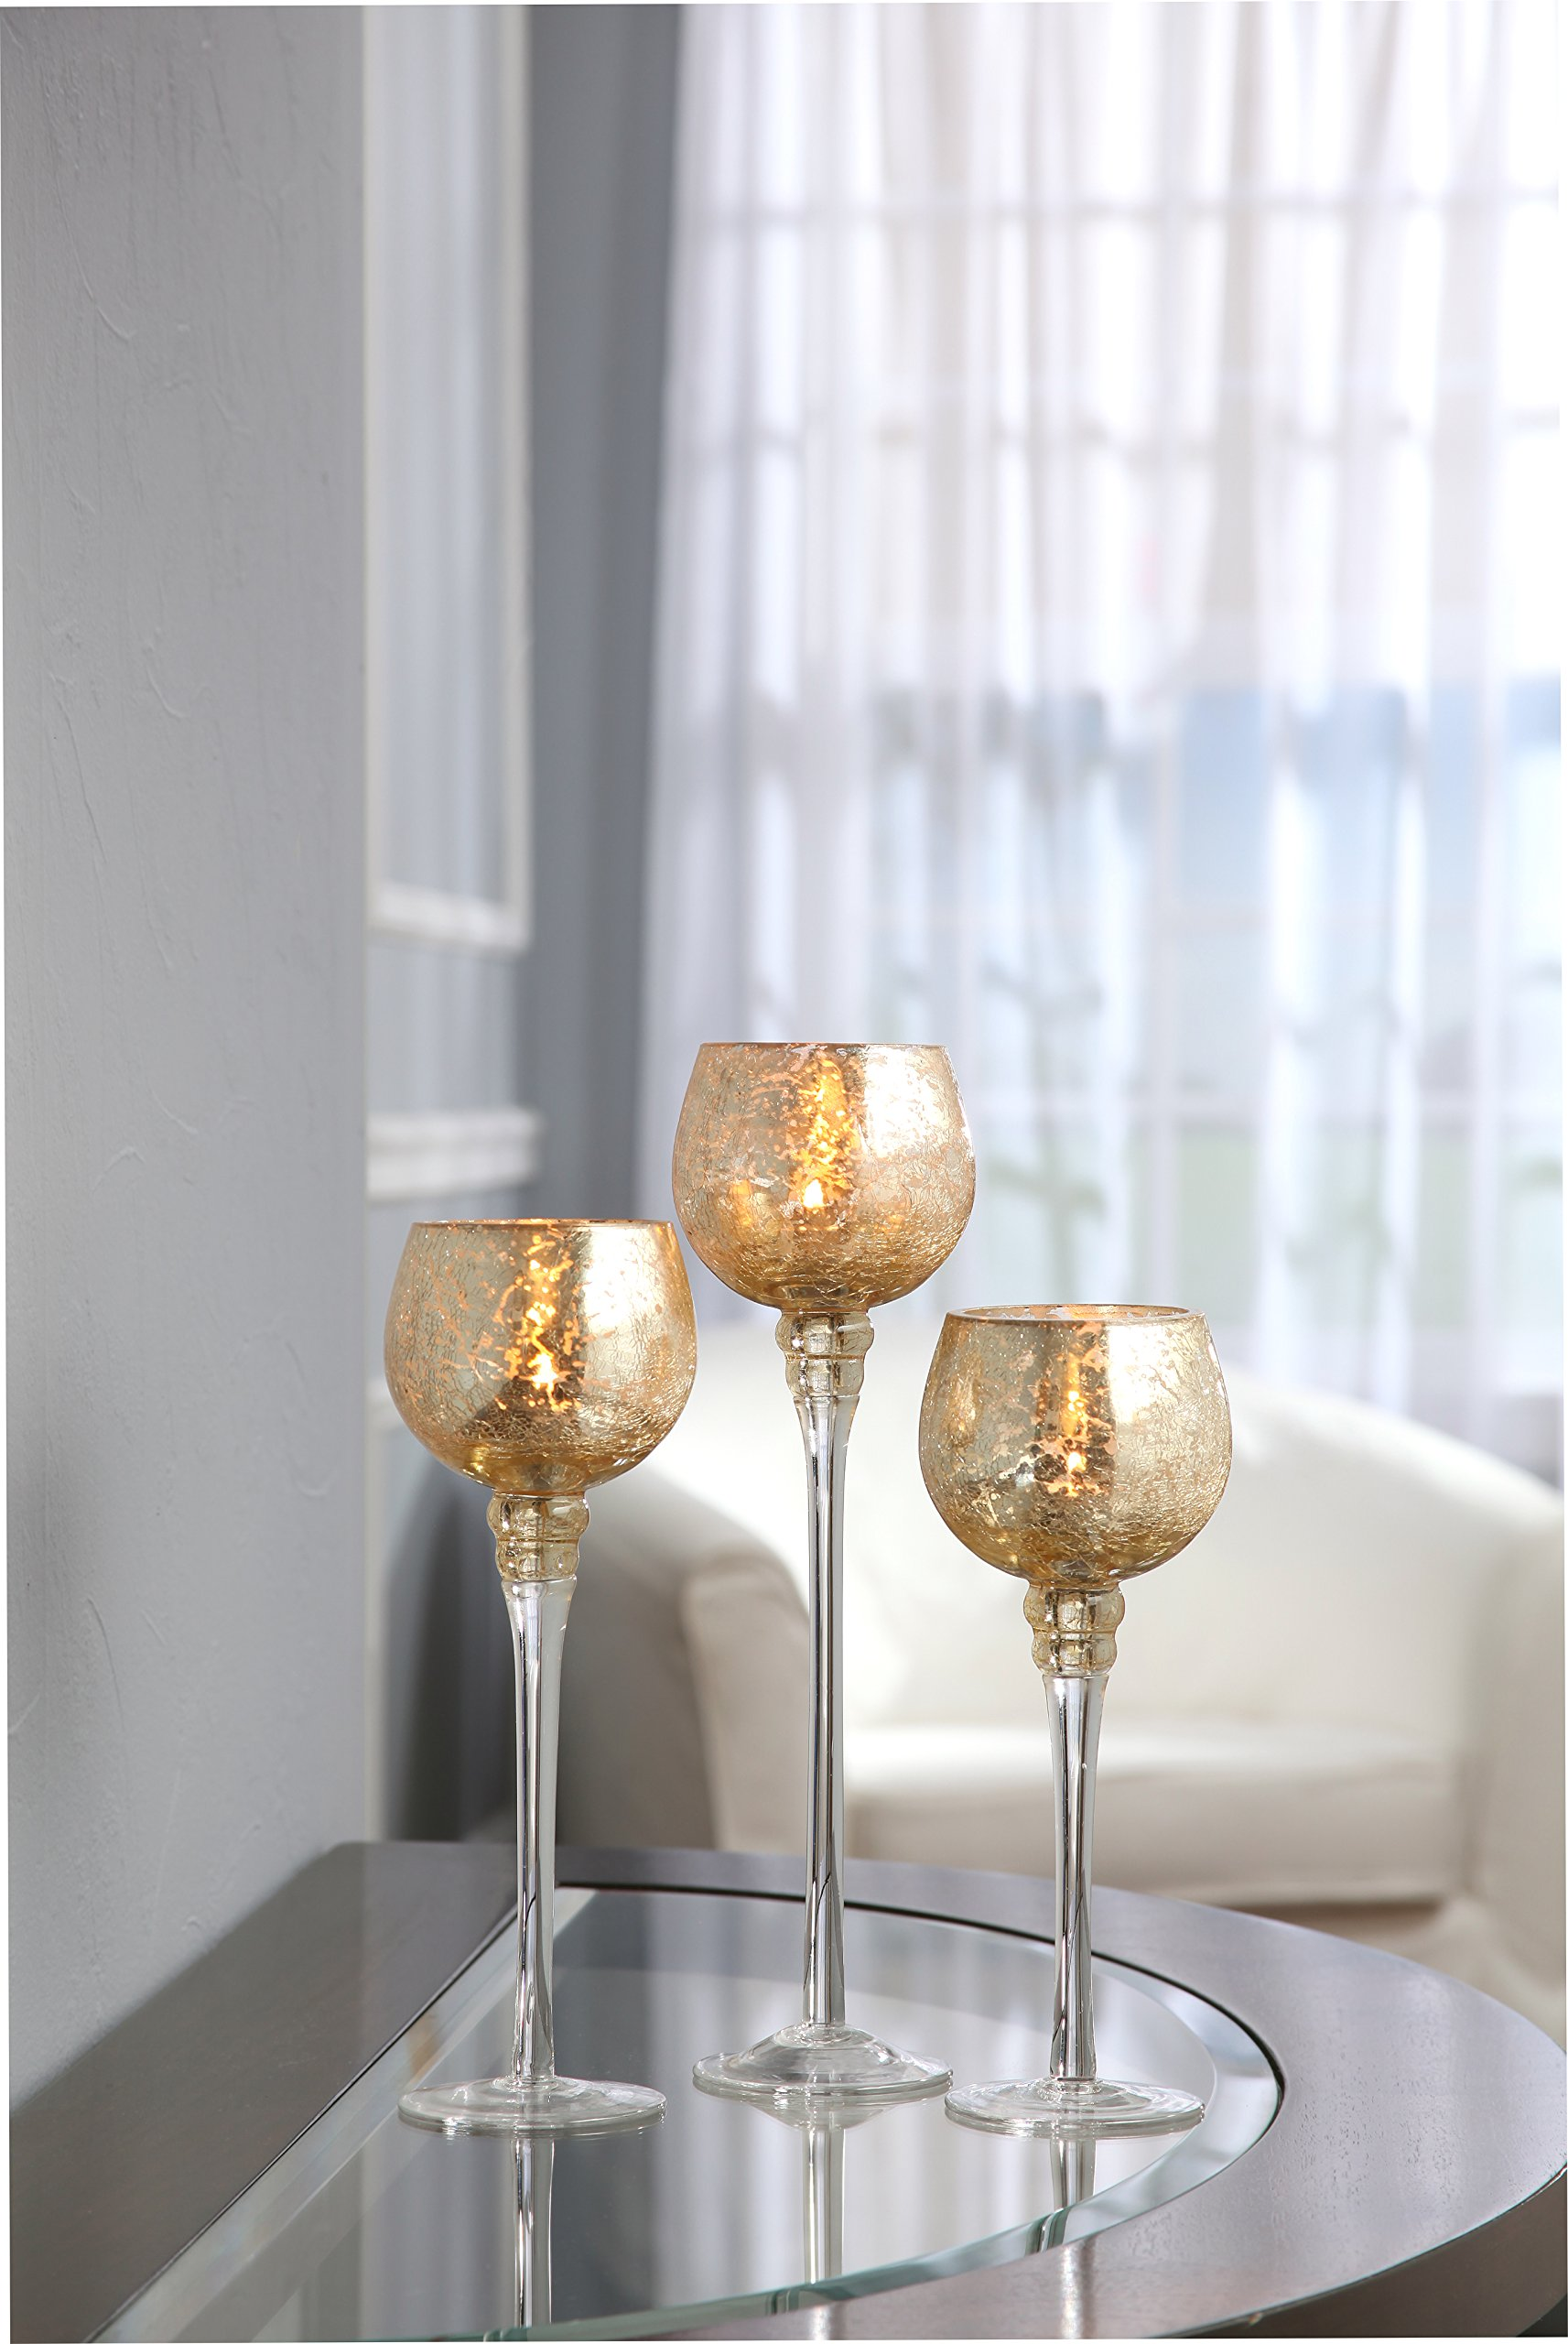 Hosley Set of 3 Crackle Gold Glass Tealight Holders (9'', 10'', 12'' High). Ideal for Weddings, Special Events, Parties. Also Makes a Great Gift. O3